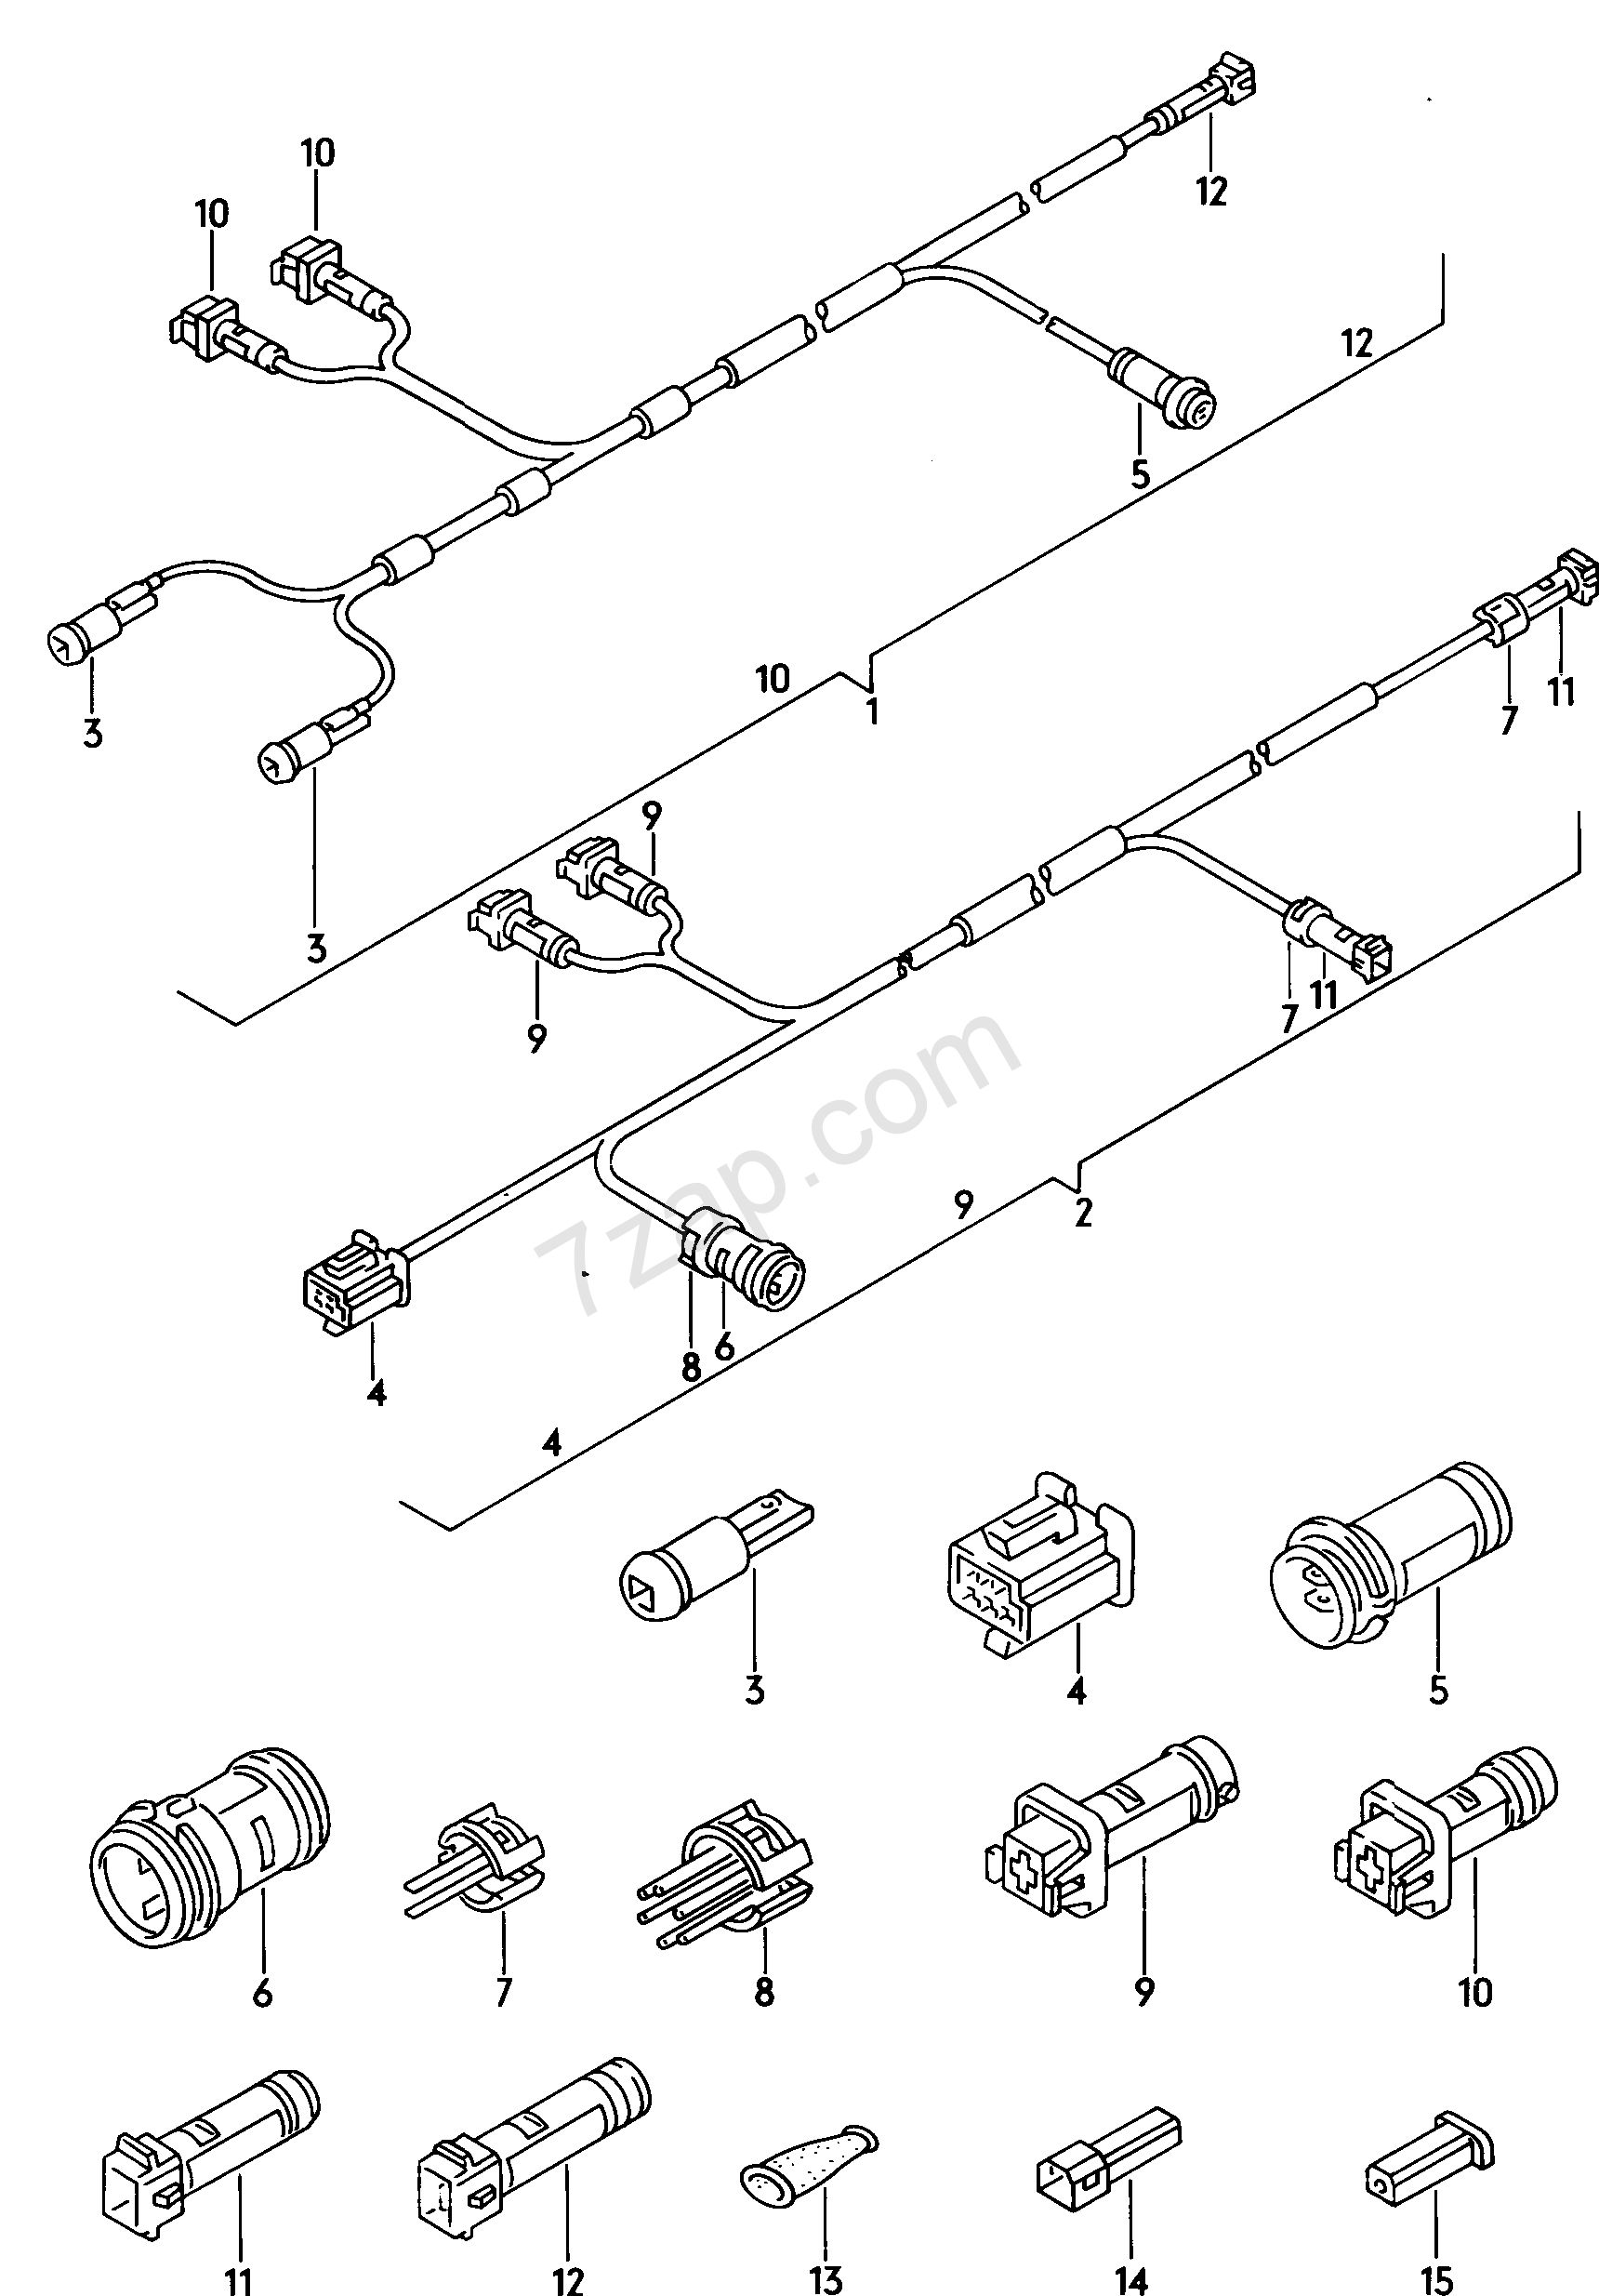 Wiring Harness For Differential Lock Warning Audi Quattro